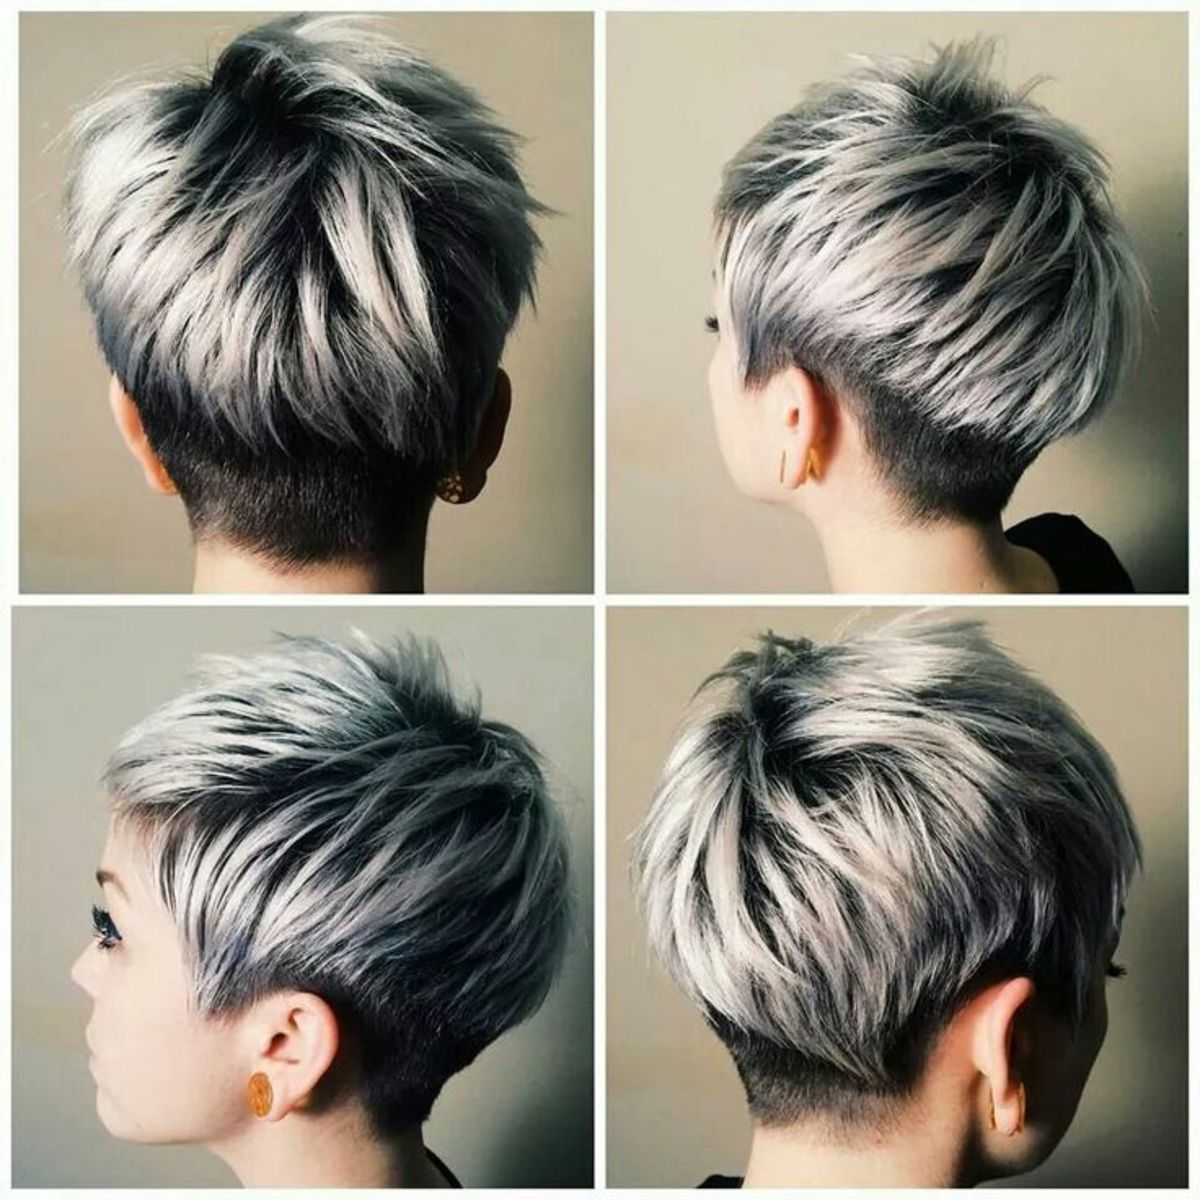 Diy hair 8 ways to rock gray hair bellatory 2 solutioingenieria Images